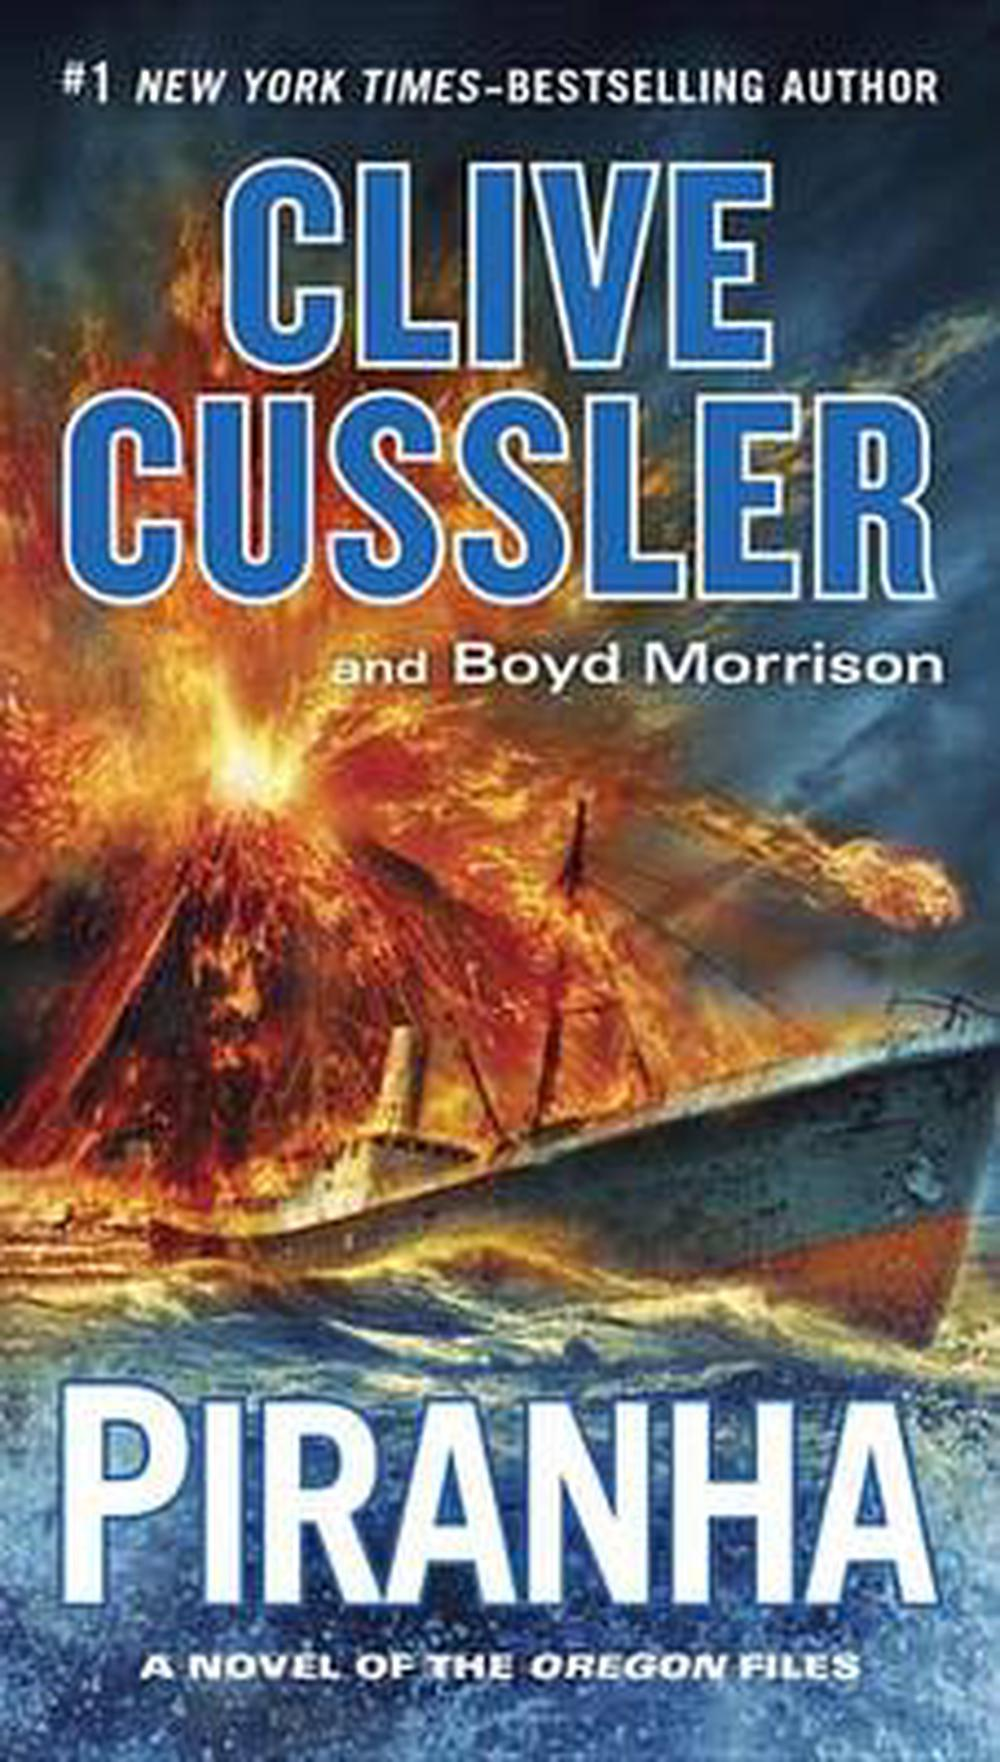 Clive Cussler Libros Details About Piranha By Clive Cussler English Mass Market Paperback Book Free Shipping